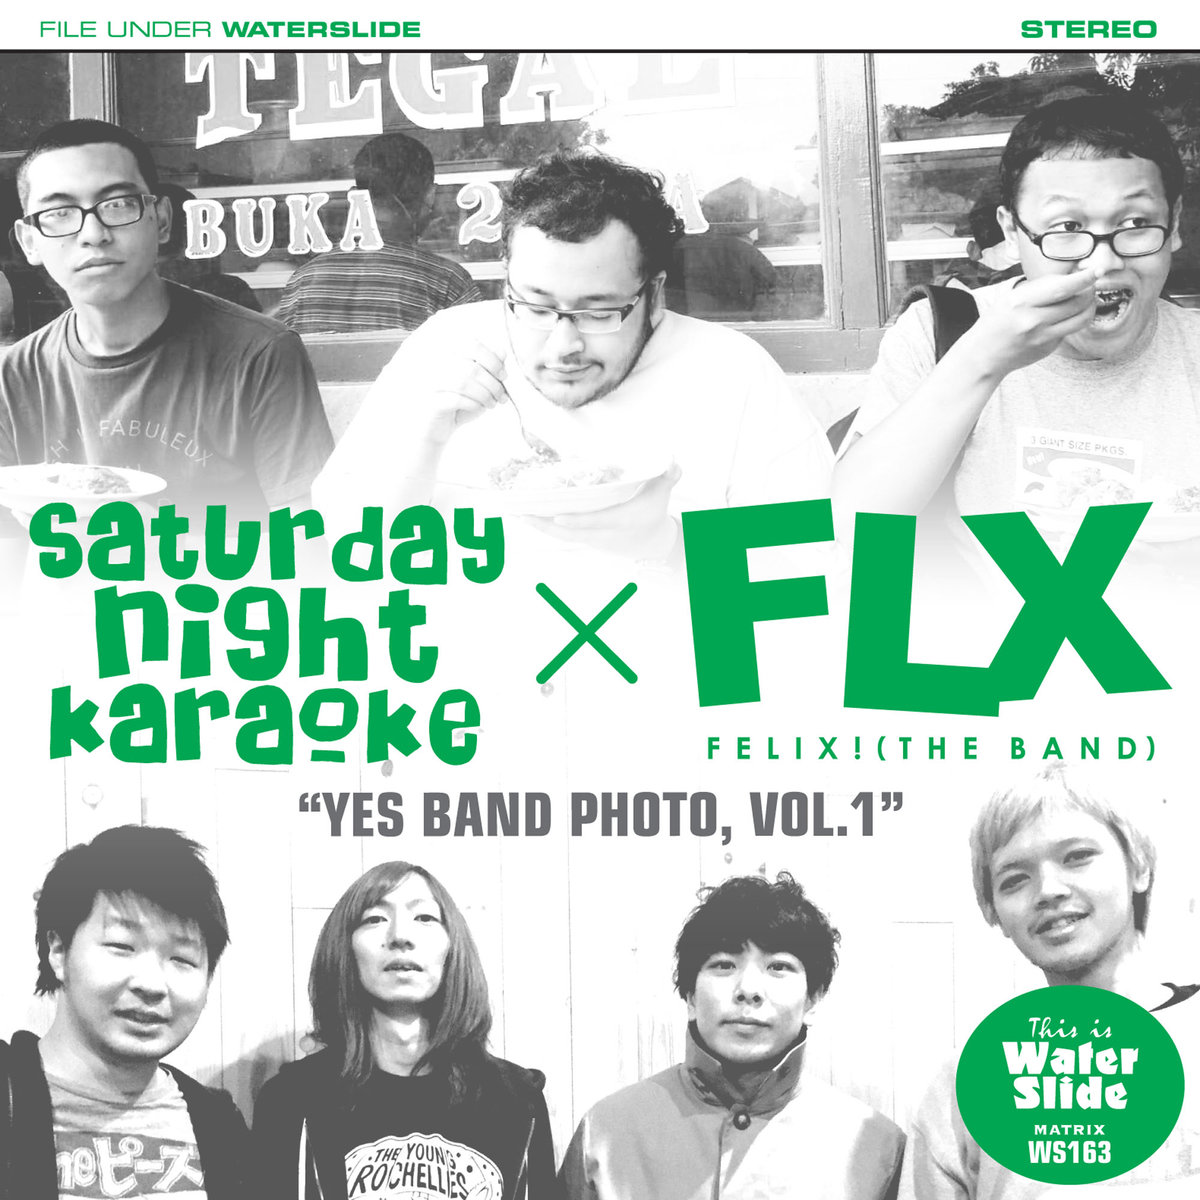 SATURDAY NIGHT KARAOKE / FELIX​!​(​THE BAND)